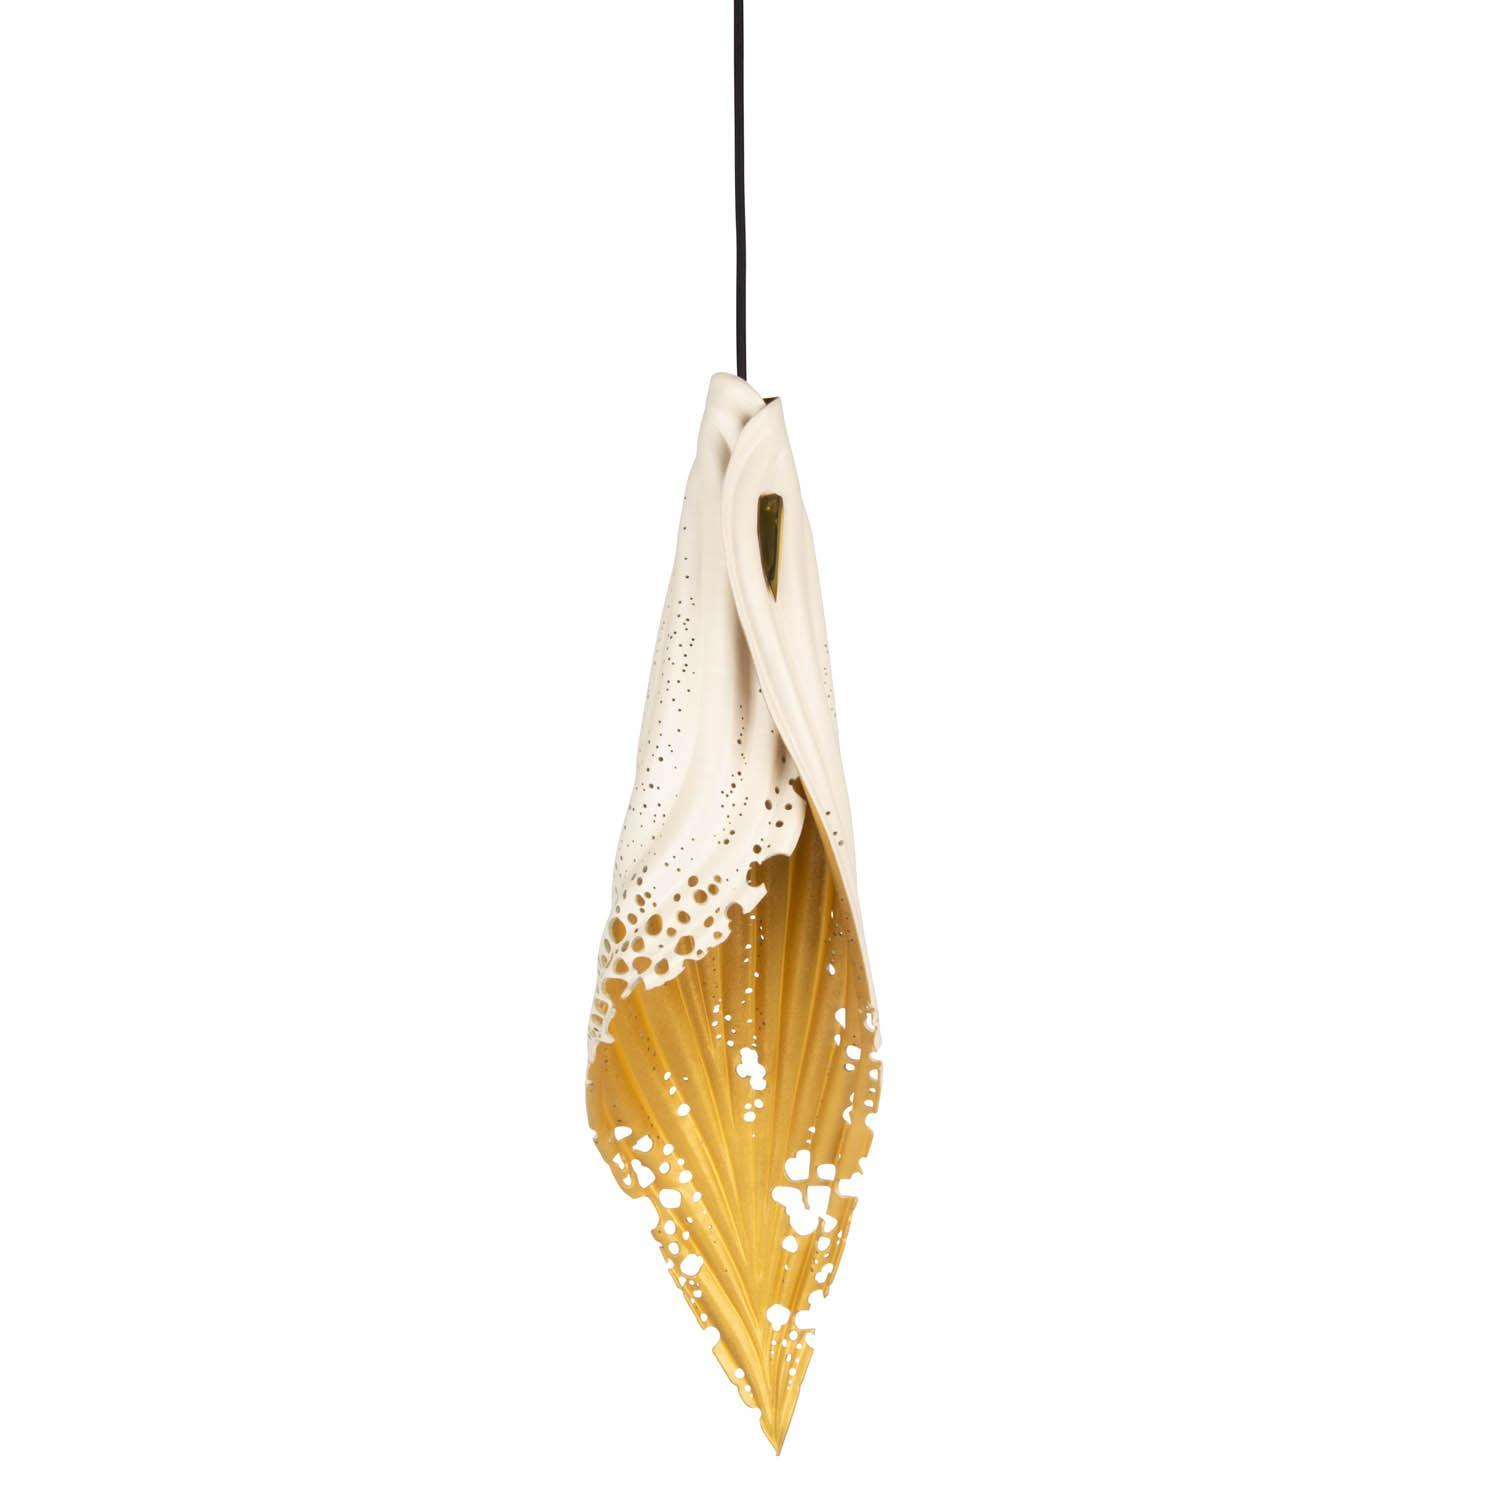 Pierced Blade Light - Large - Bone/Gold